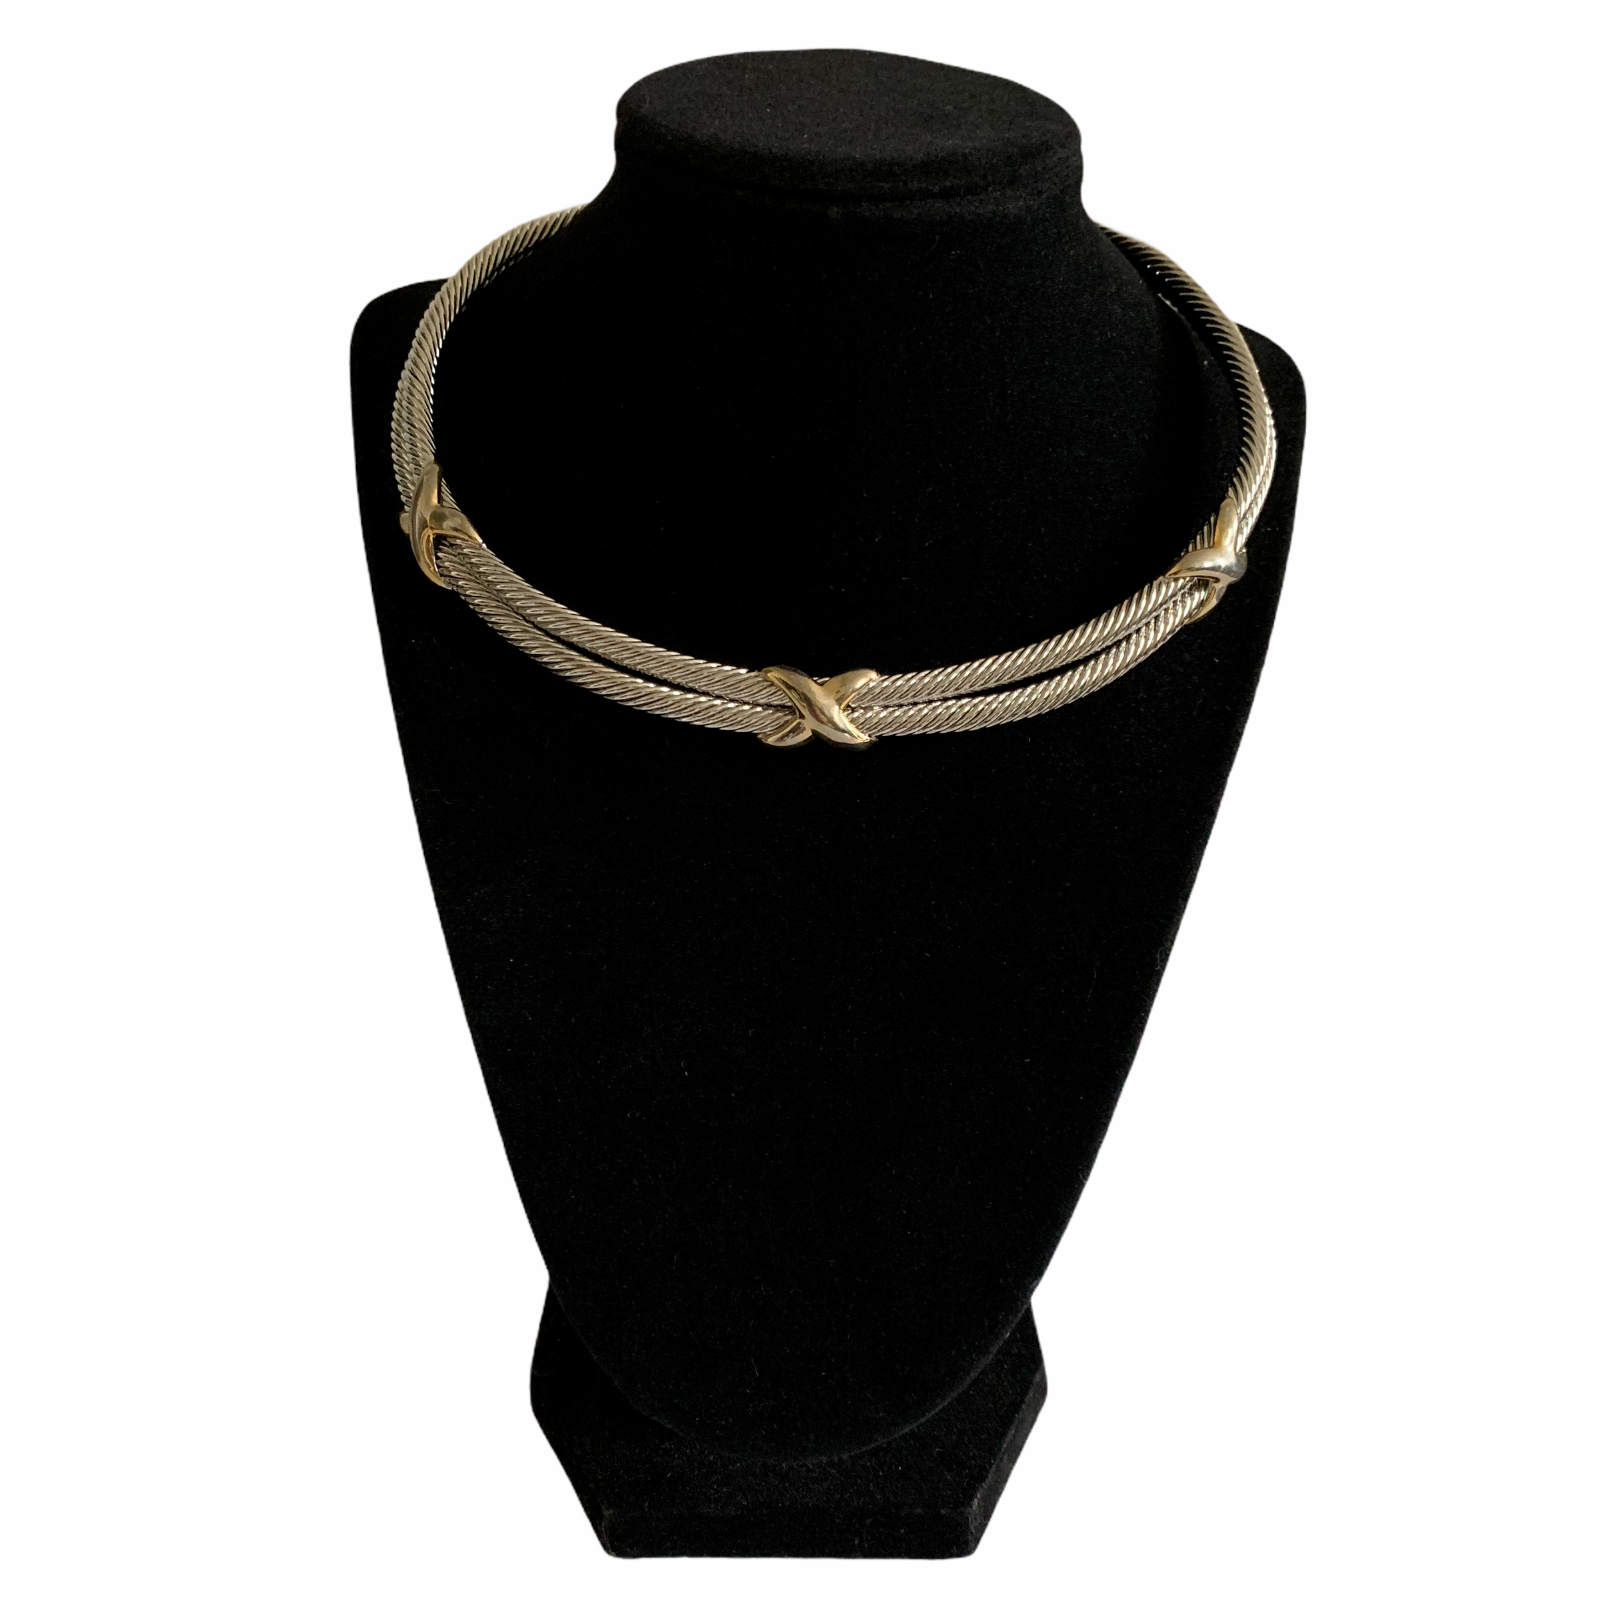 Vintage Gold Tone X Collar Necklace Silver Tone Double Cable Choker Necklace - $32.51